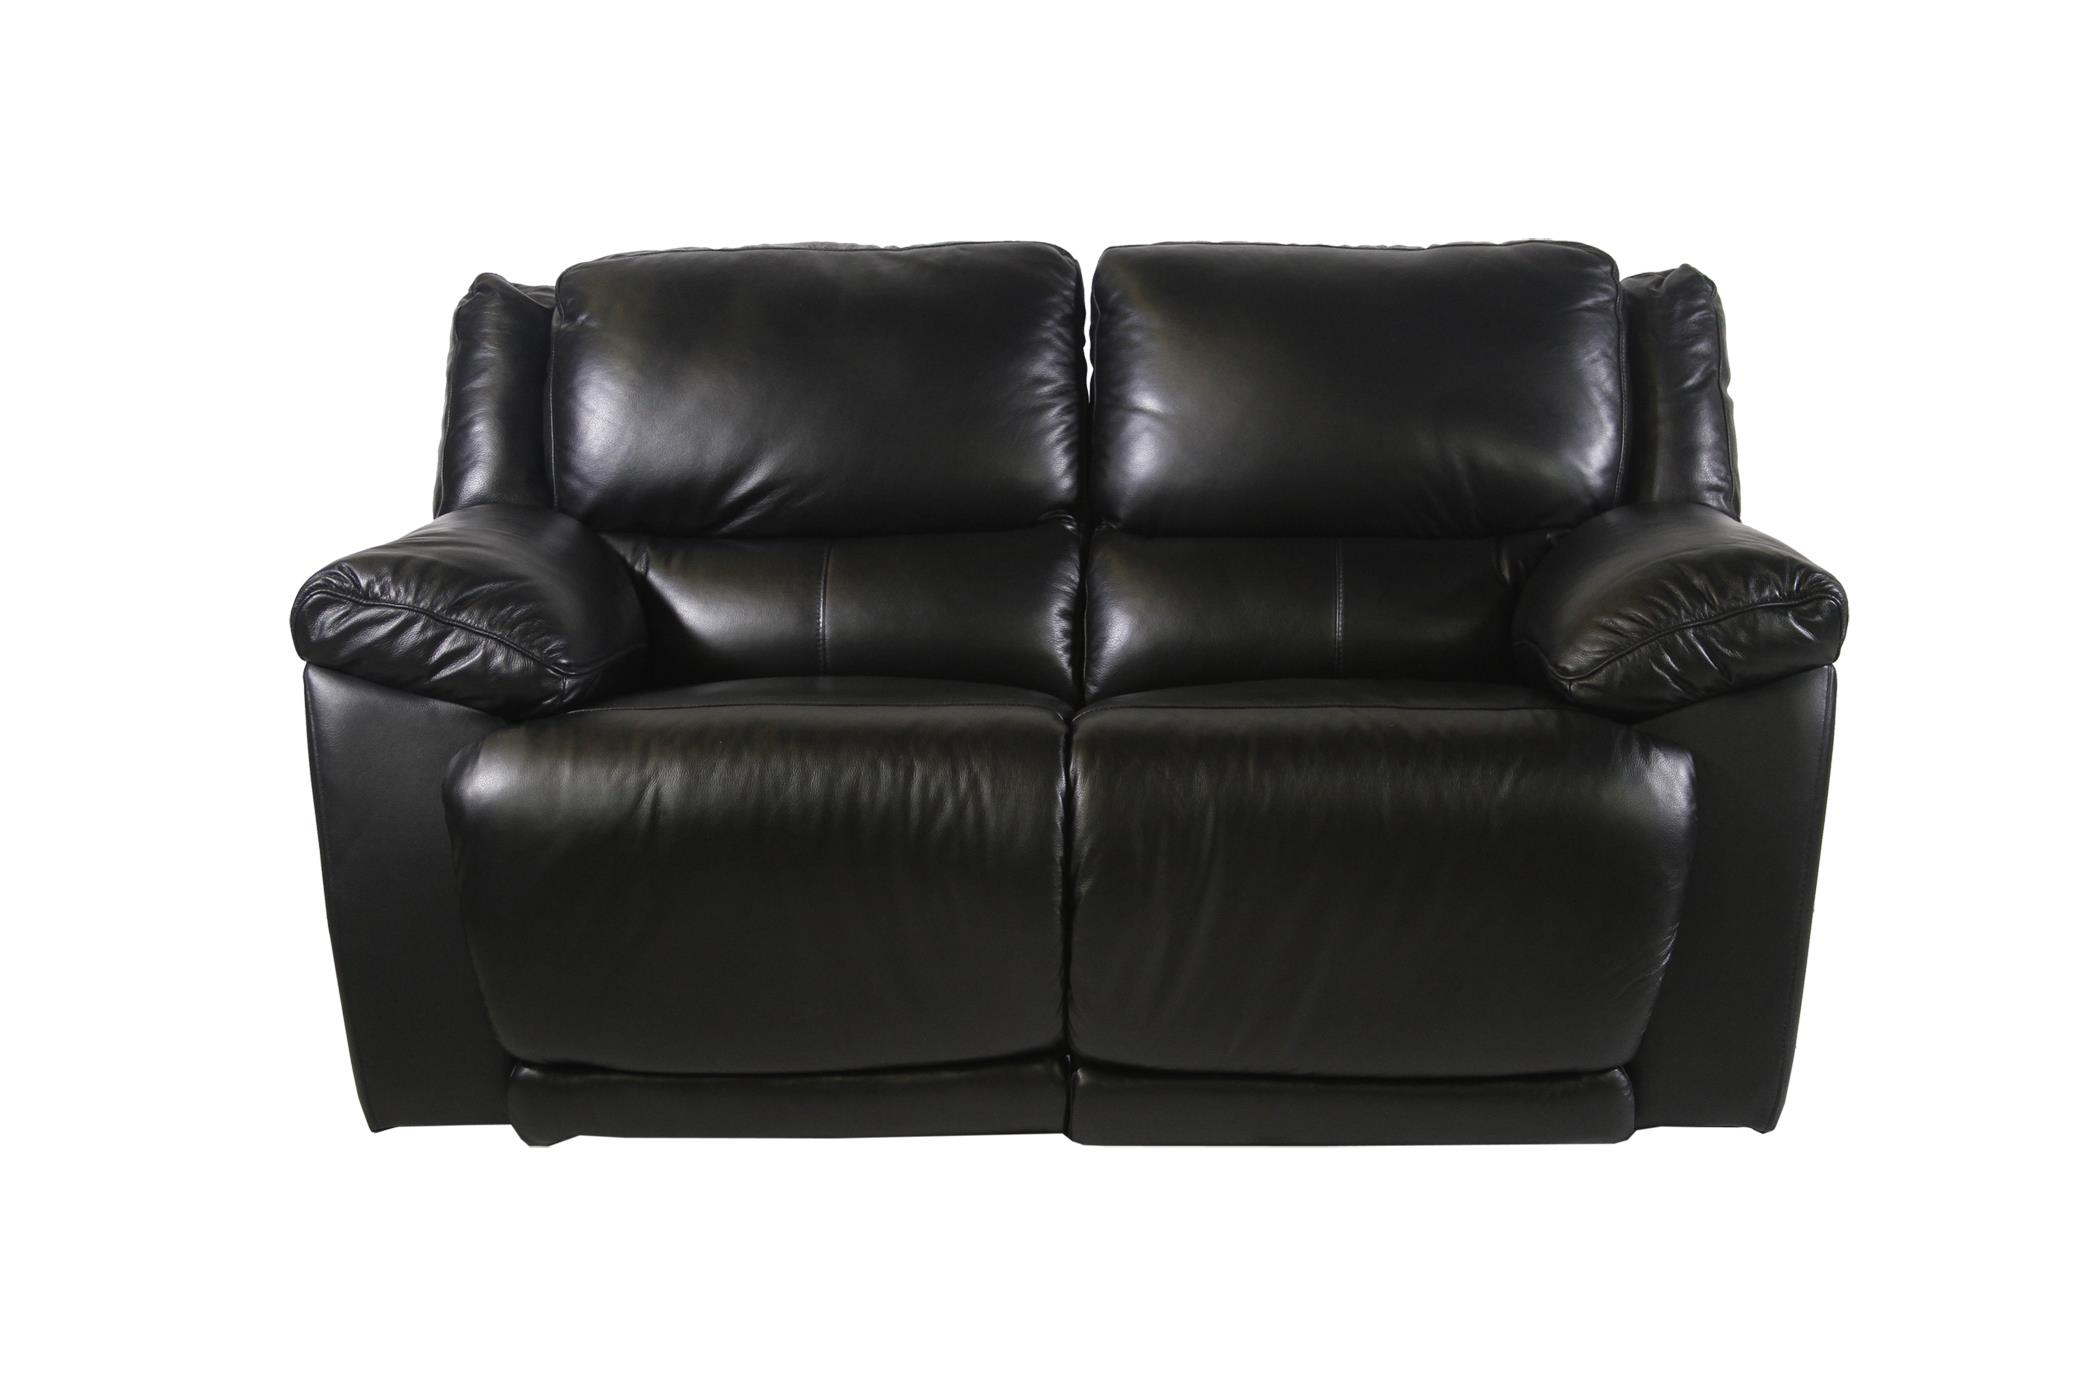 Futura Leather Cole Dual Reclining Loveseat - Item Number: M149-82